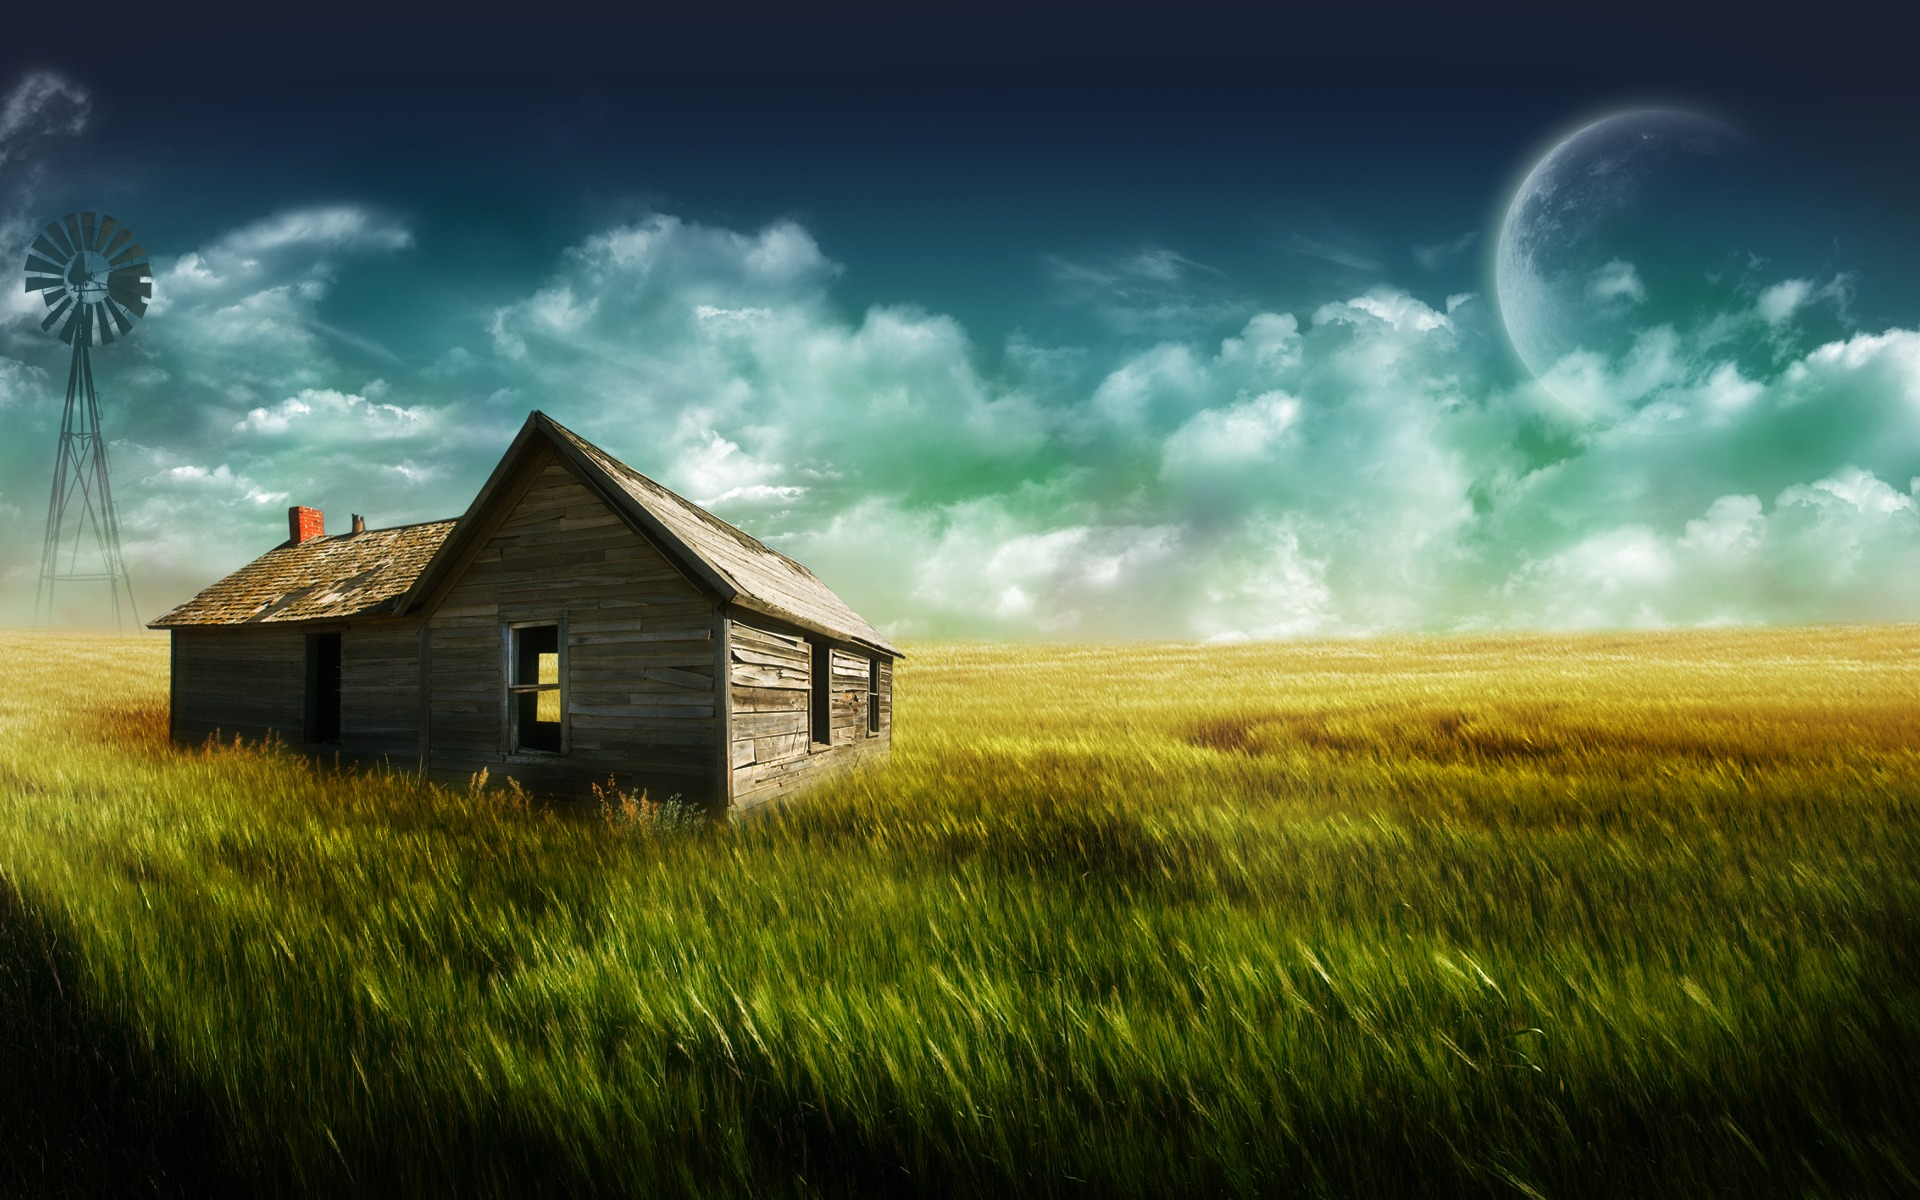 Old Farm Wallpaper Landscape Nature Wallpapers in jpg format for ...